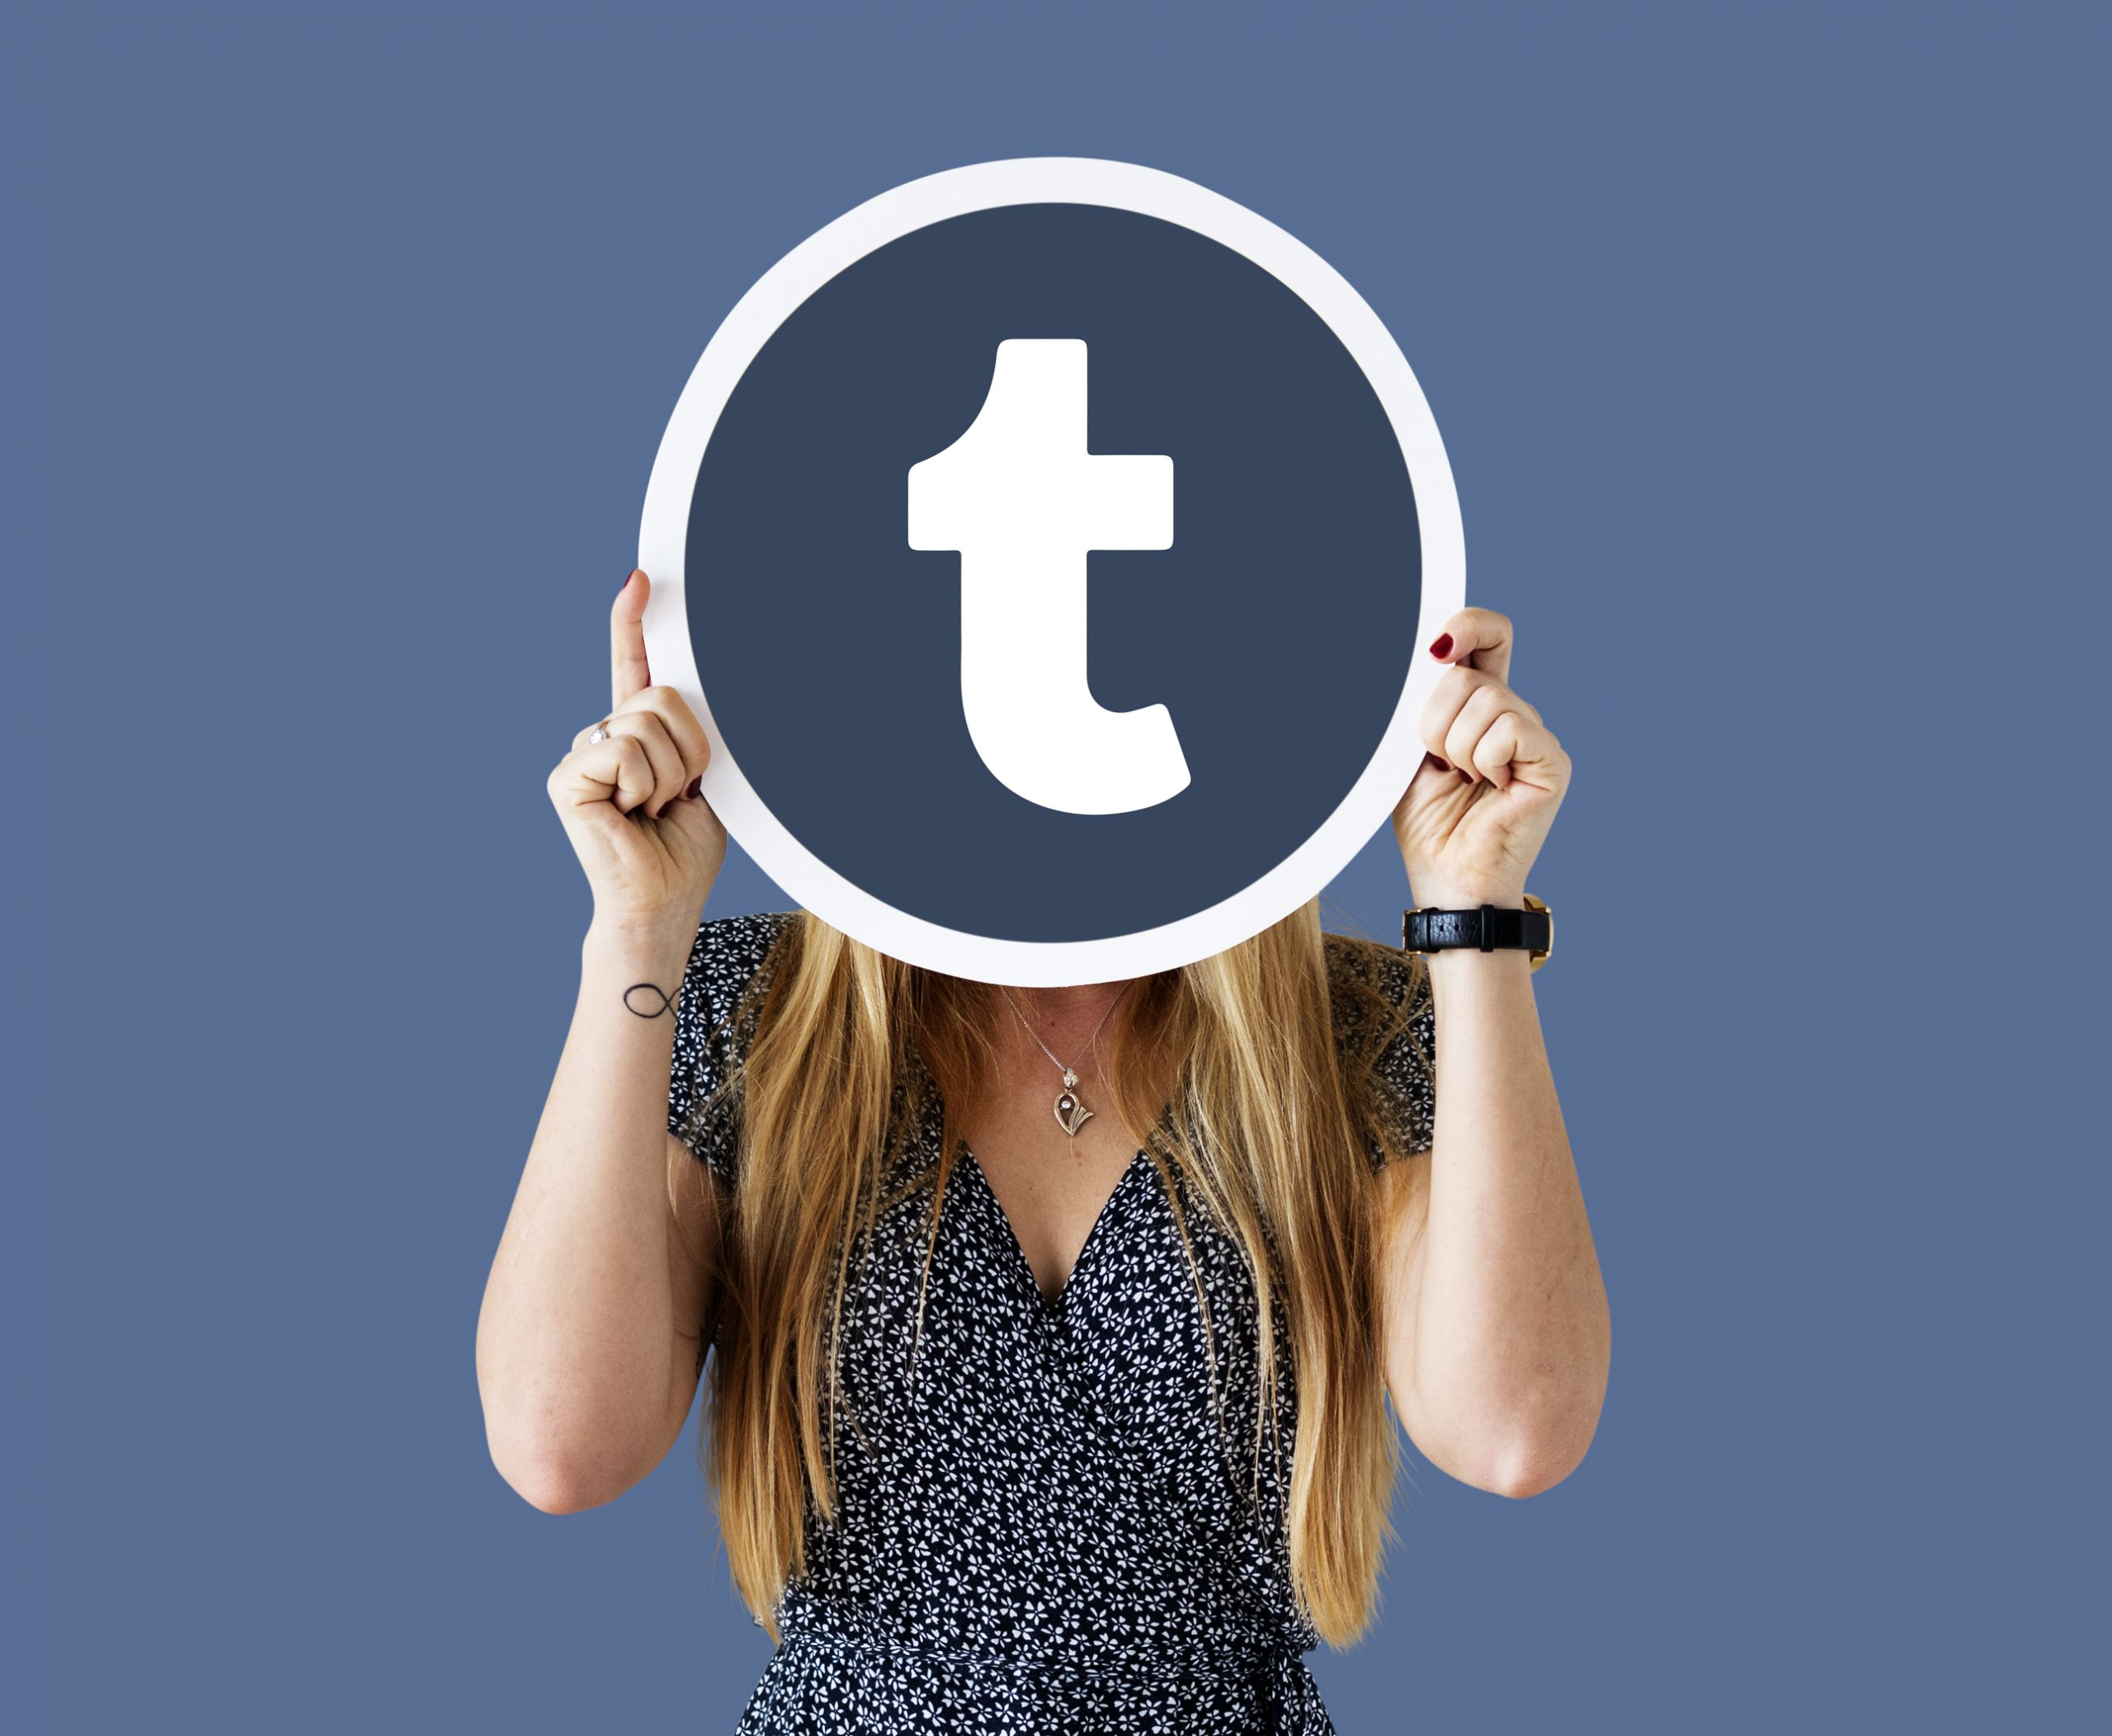 Getting started on Tumblr as a content creator